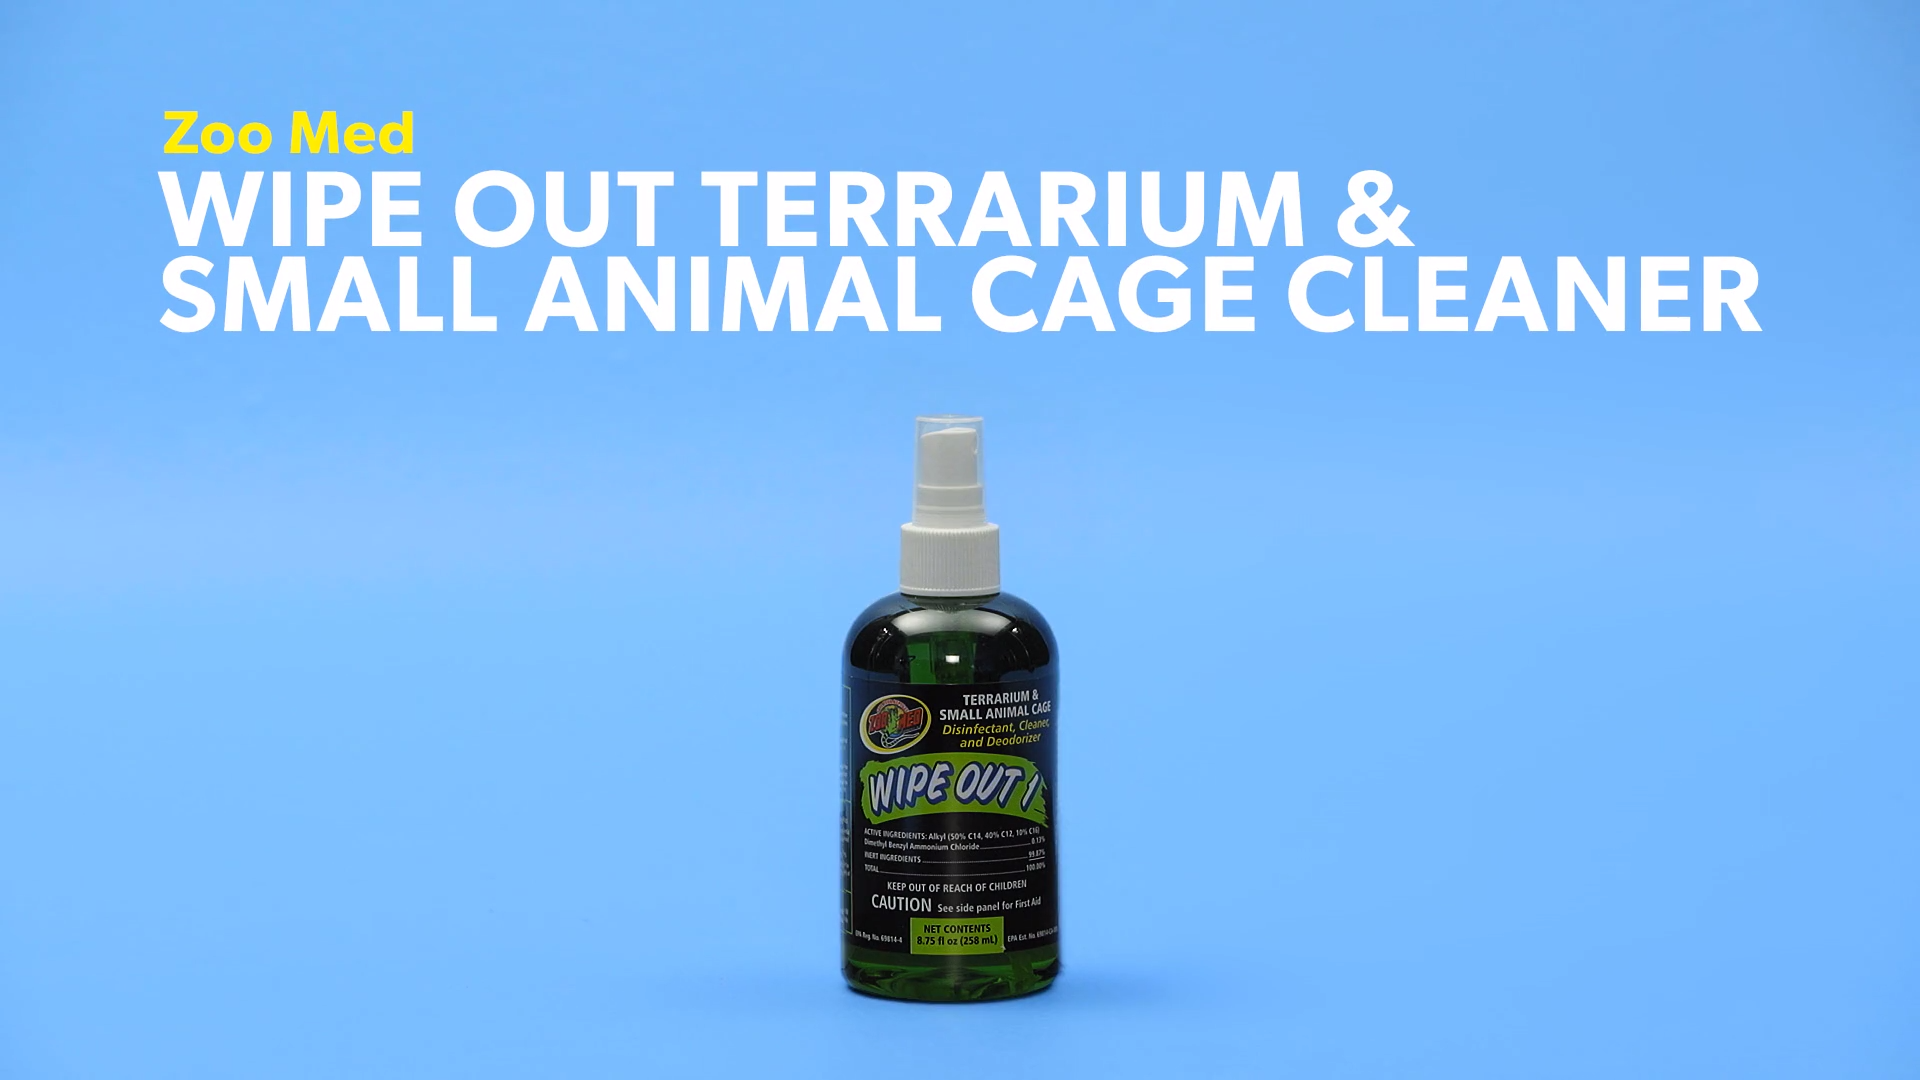 Zoo Med Wipe Out Terrarium Small Animal Cage Cleaner 8 75 Oz